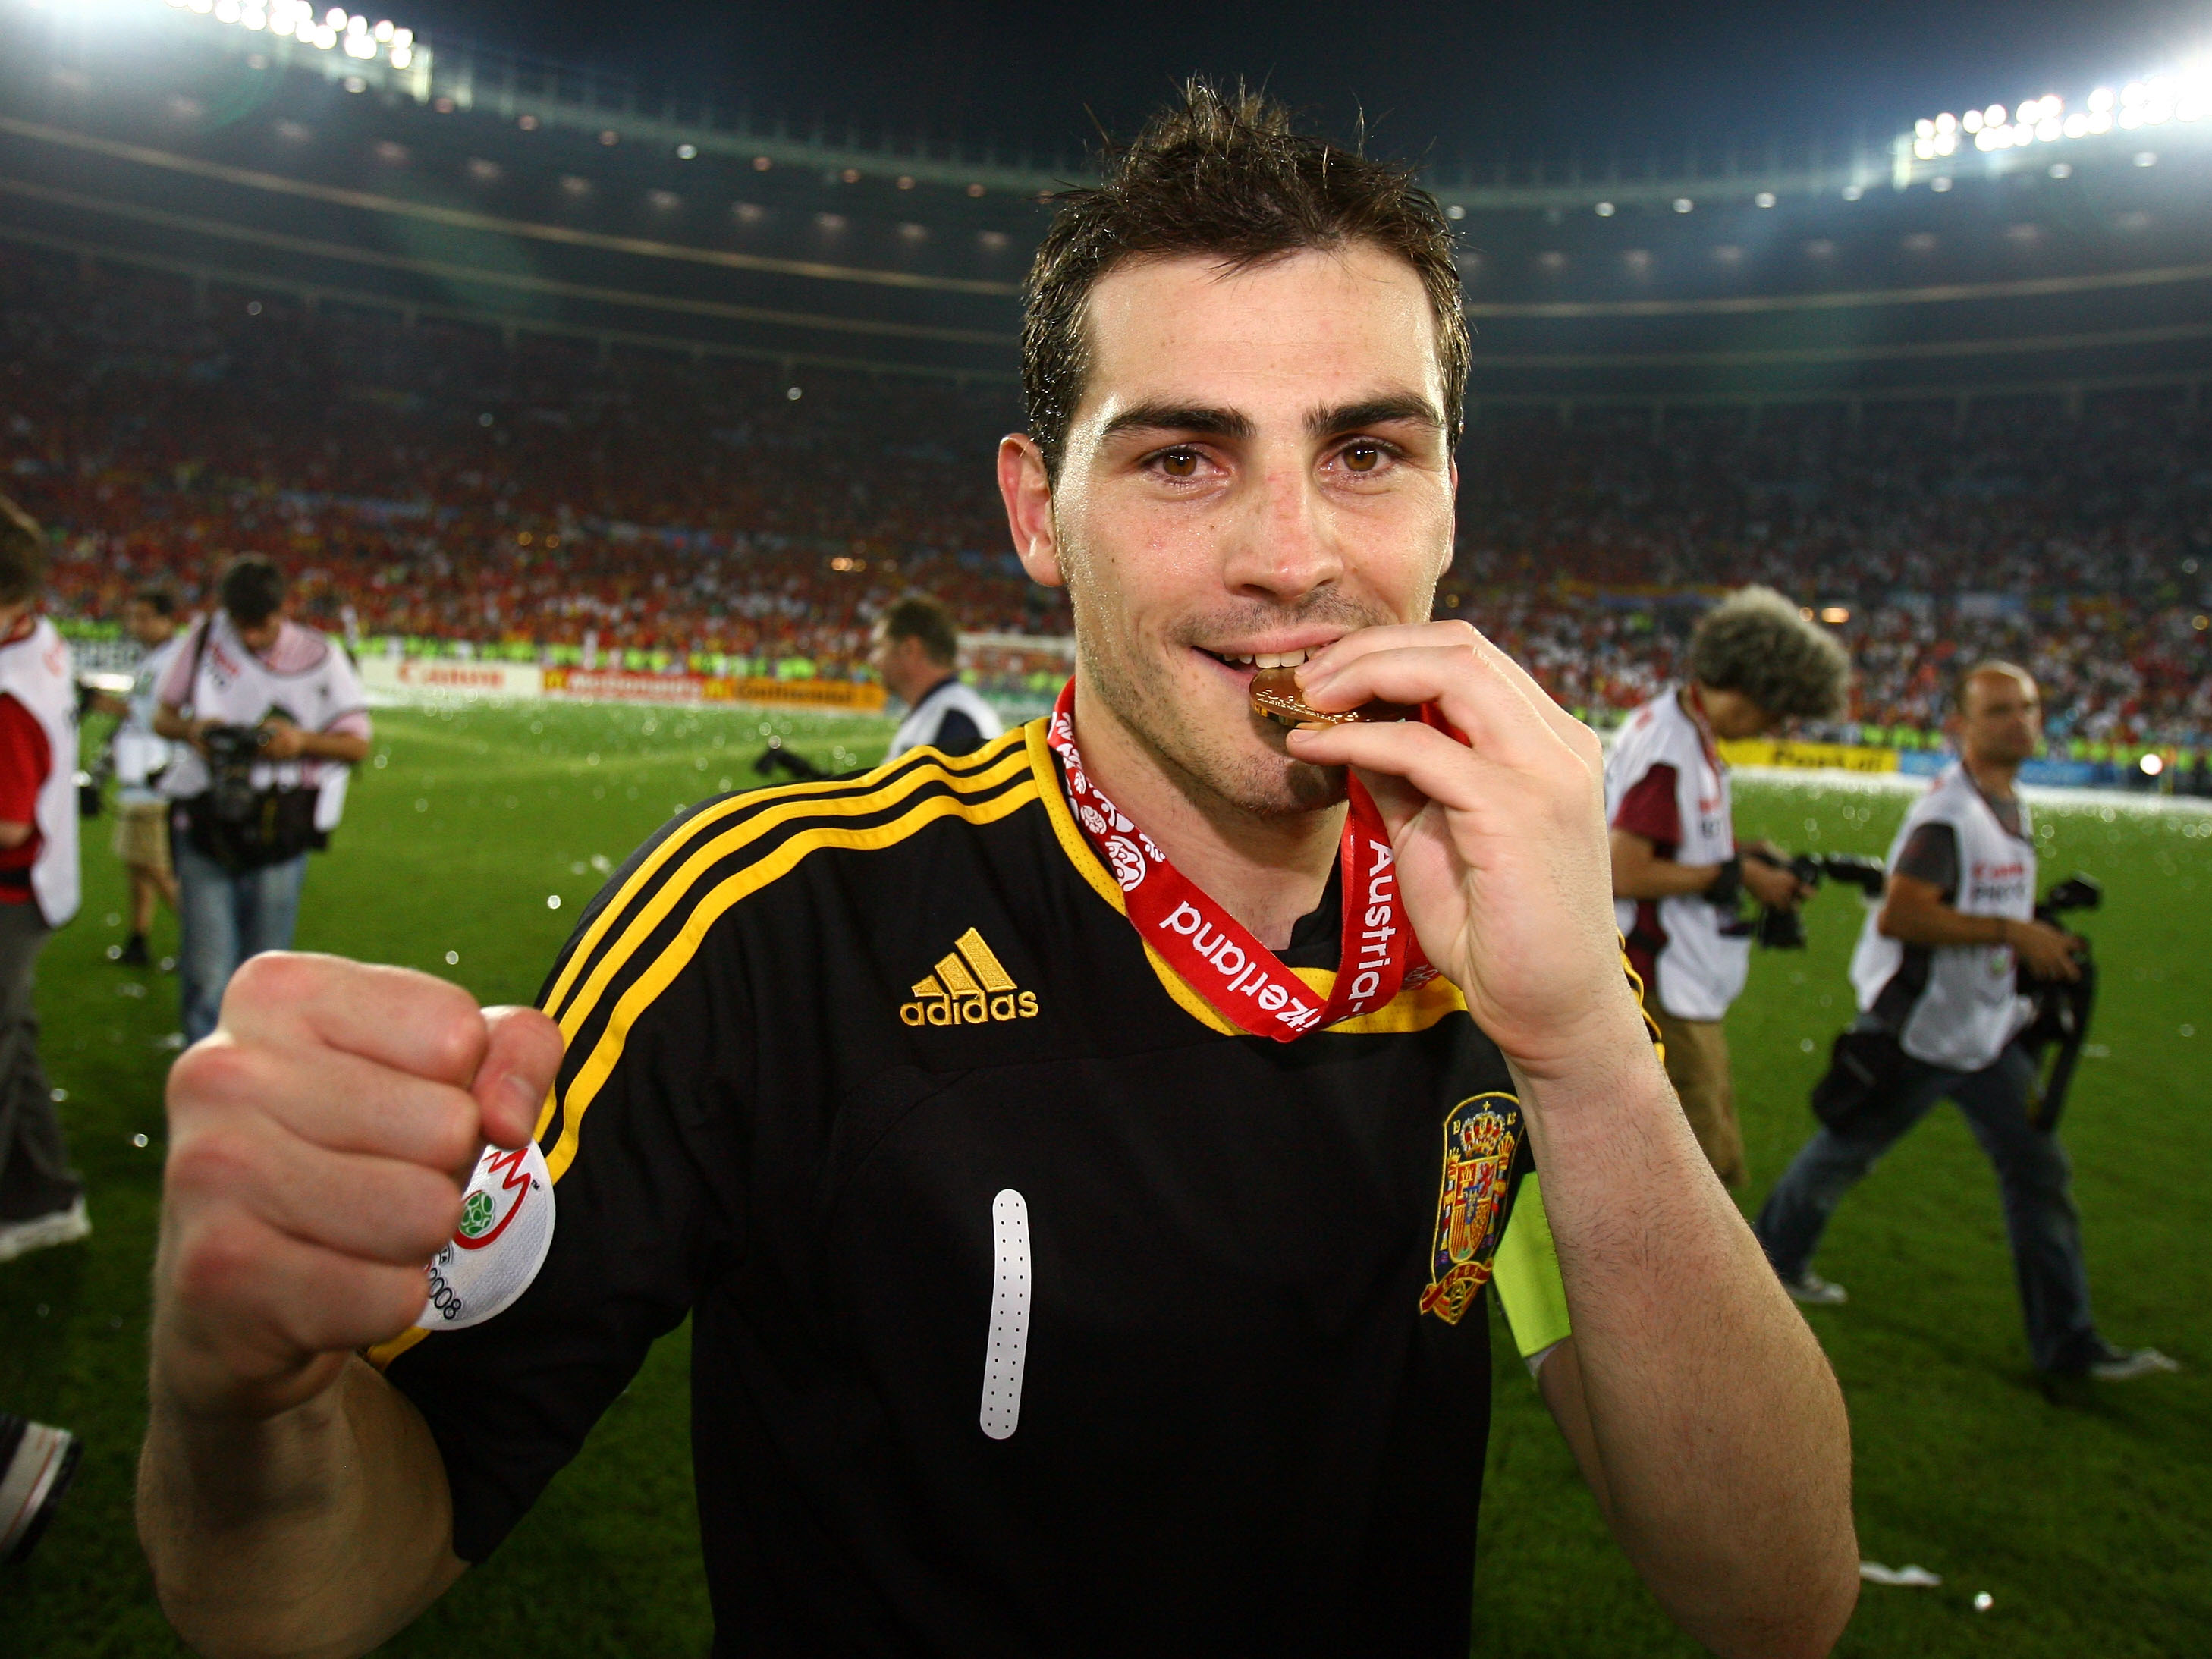 VIENNA, AUSTRIA - JUNE 29:  Iker Casillas of Spain kisses his winners medal after the UEFA EURO 2008 Final match between Germany and Spain at Ernst Happel Stadion on June 29, 2008 in Vienna, Austria.  (Photo by Alex Livesey/Getty Images)